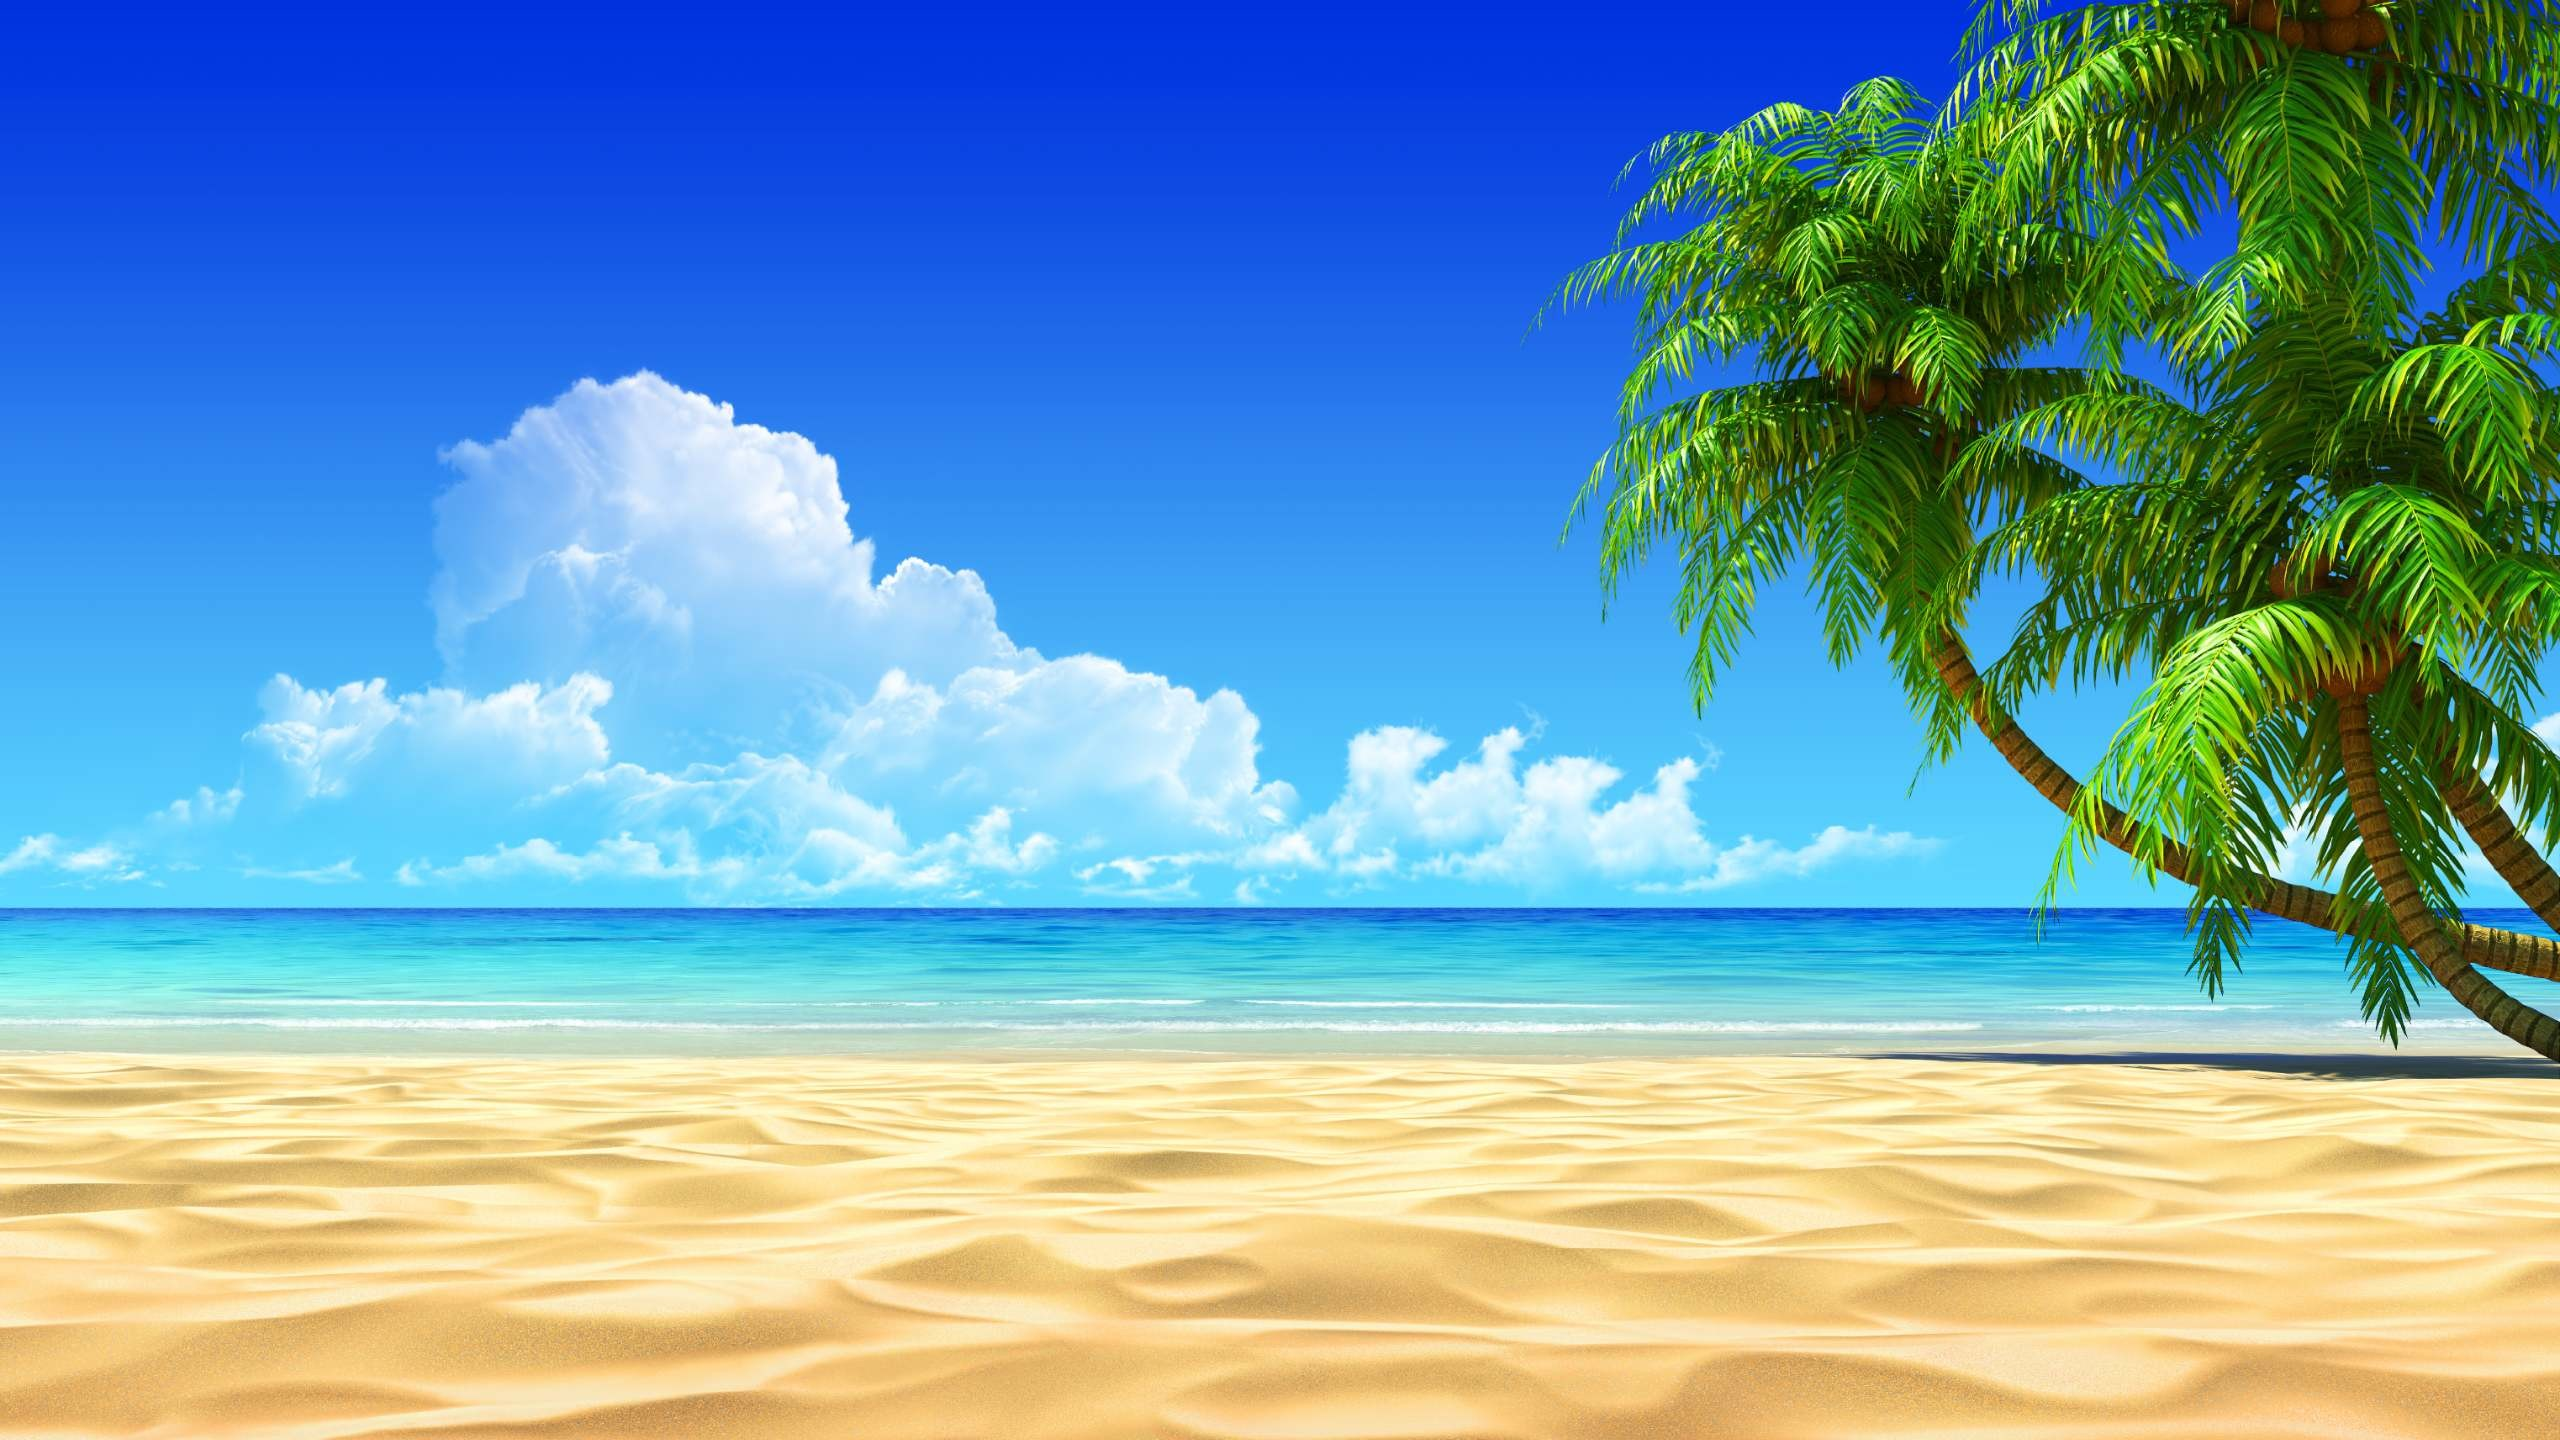 Hd beach desktop backgrounds 61 images - Wallpapers pc ...